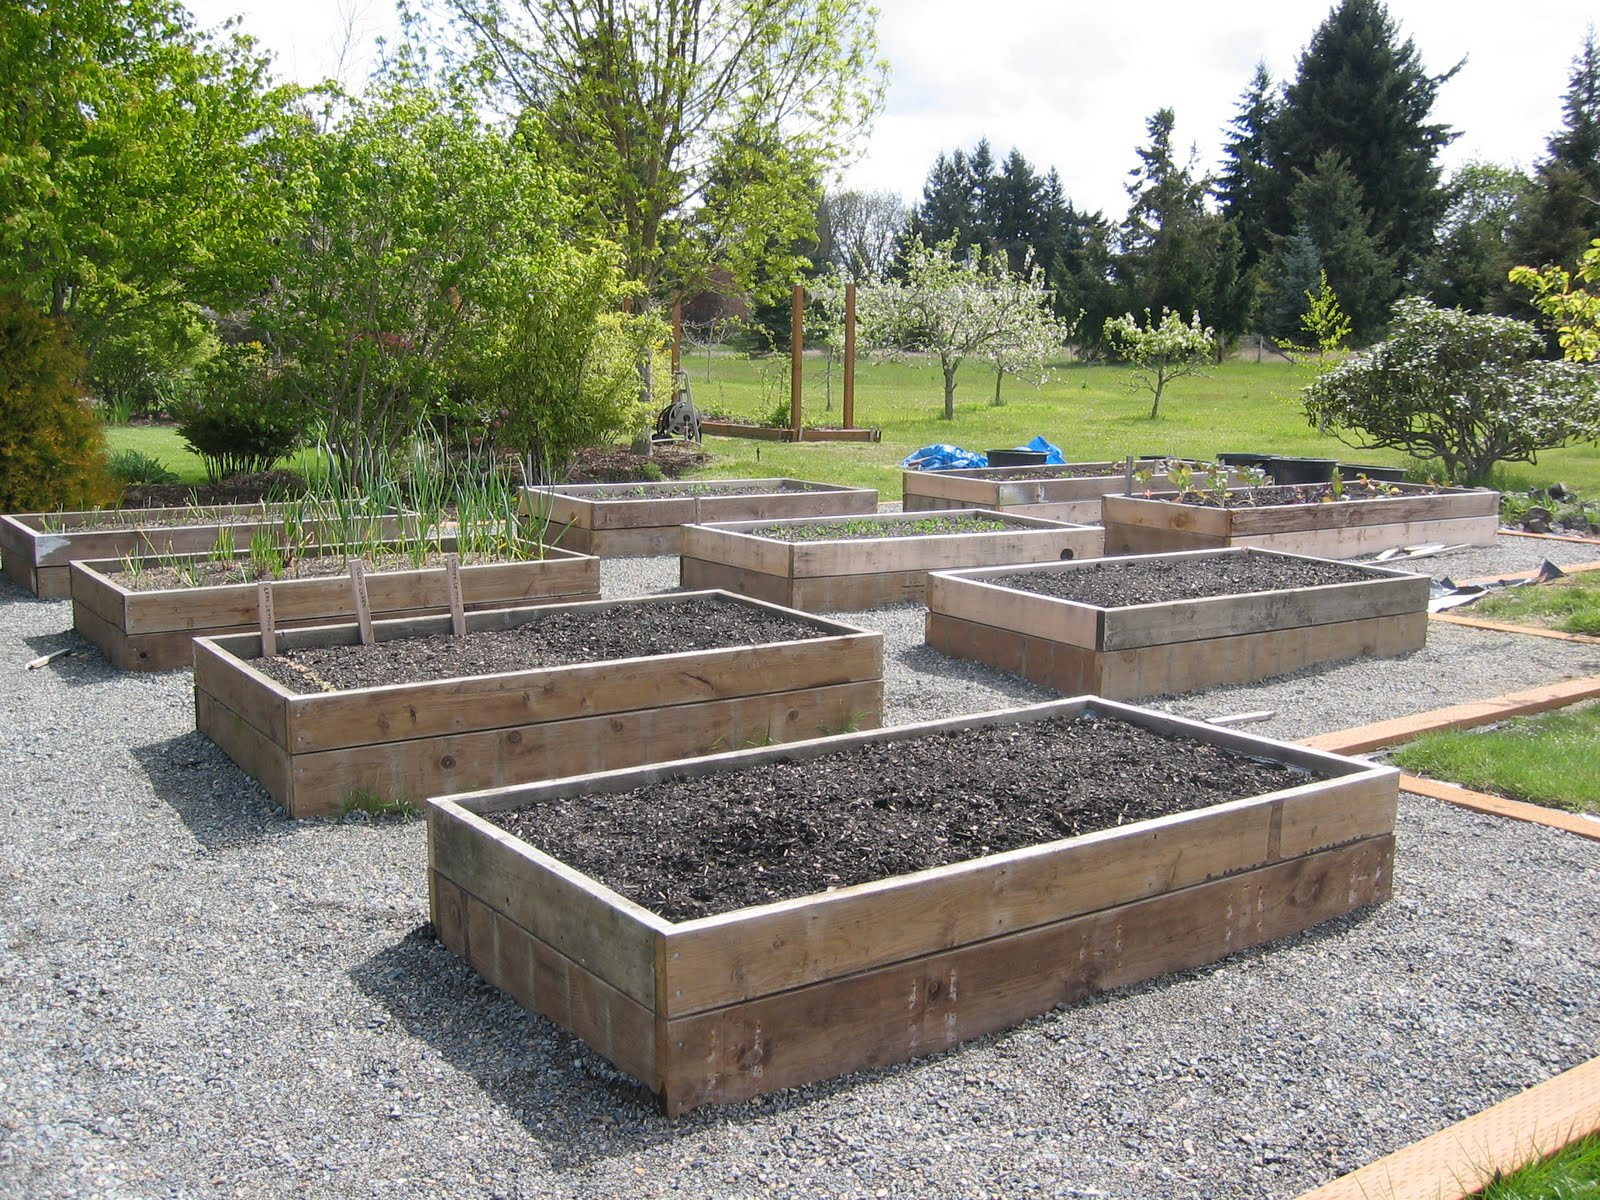 The tacoma kitchen garden journal raised vegetable beds for Attractive raised vegetable beds